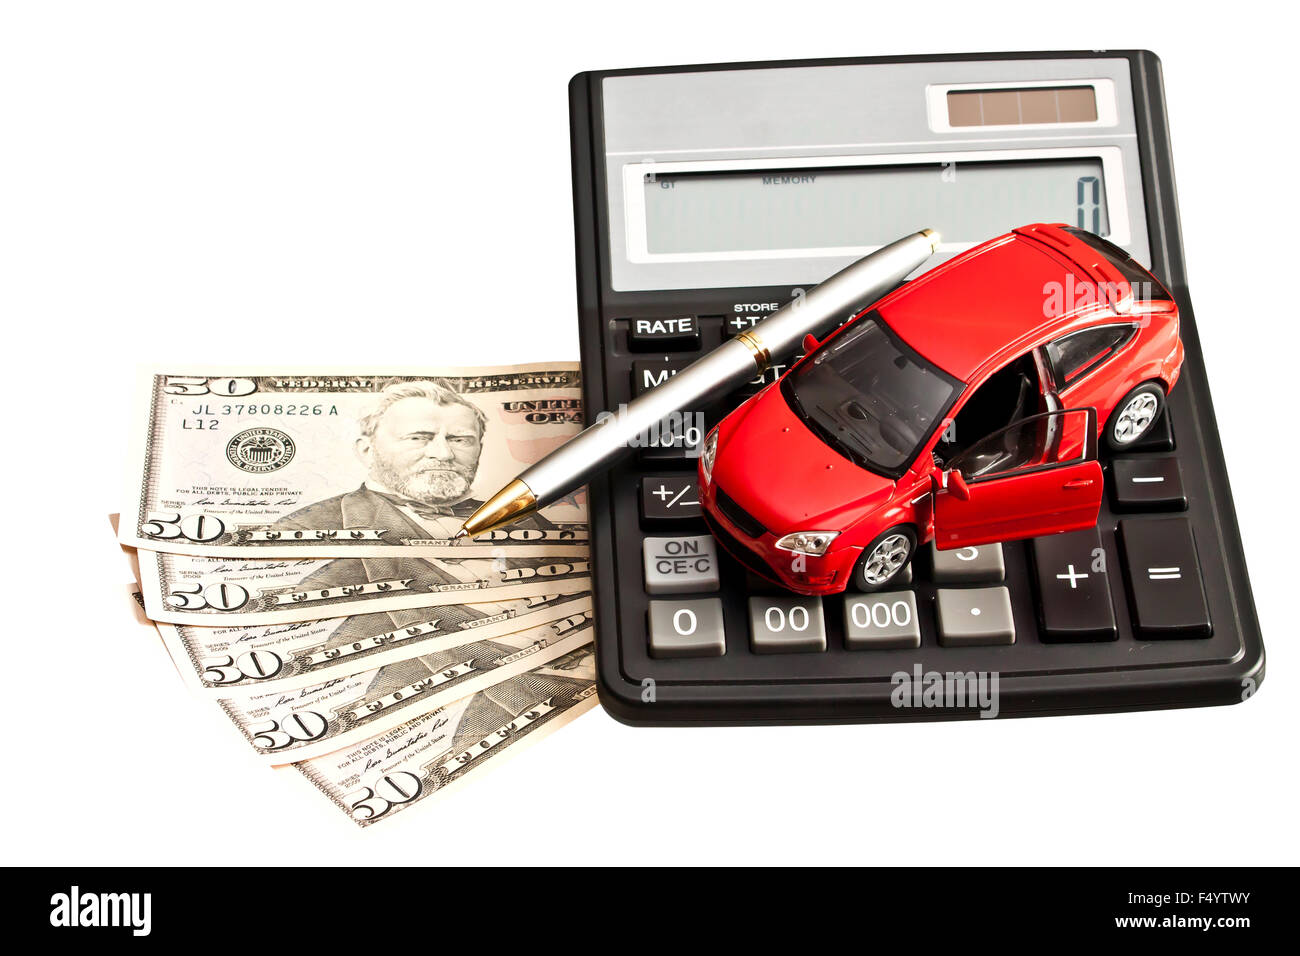 Toy car, money and calculator over white. Concept for buying, renting, insurance, fuel, service and repair costs - Stock Image